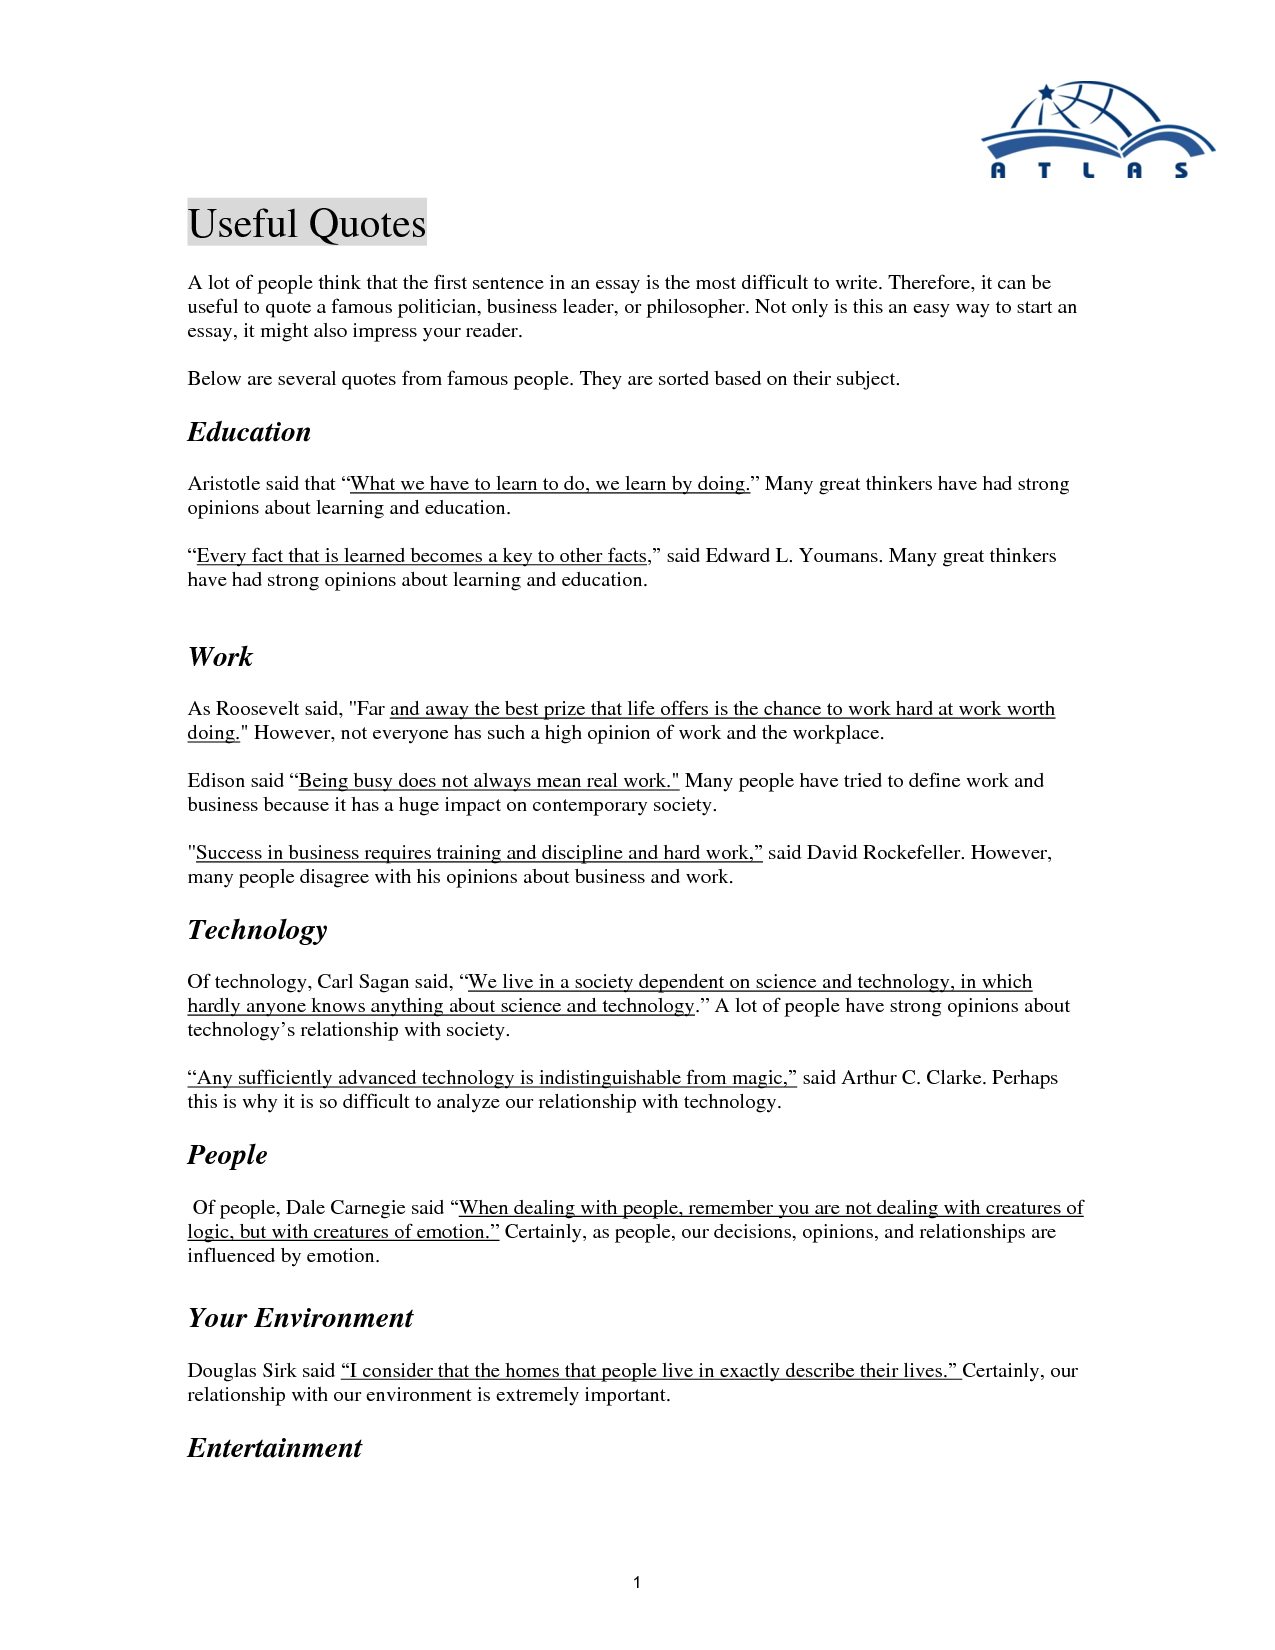 Essay Assignment: Descriptive and Informative Profile